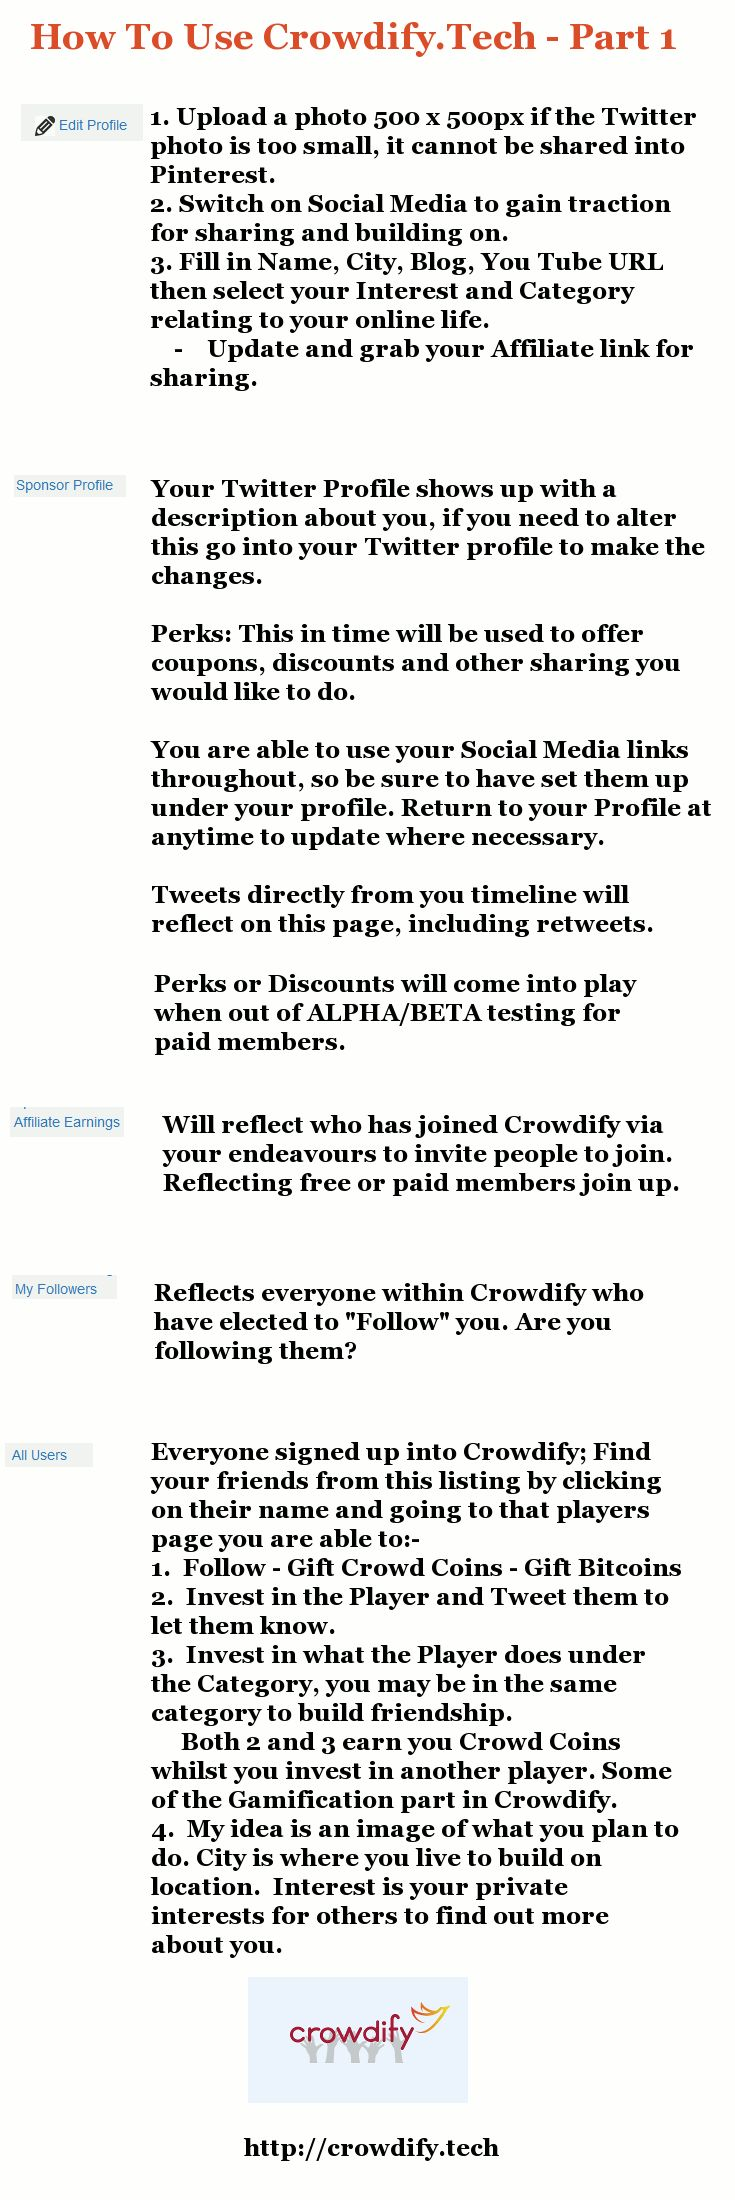 Maximum effect is to set up correctly - Portfolio is your brand, here are the first 5 steps on Crowdify.tech to get you going - Sign up using Twitter here http://blogbizbuzz.com/CrowdifyTech/